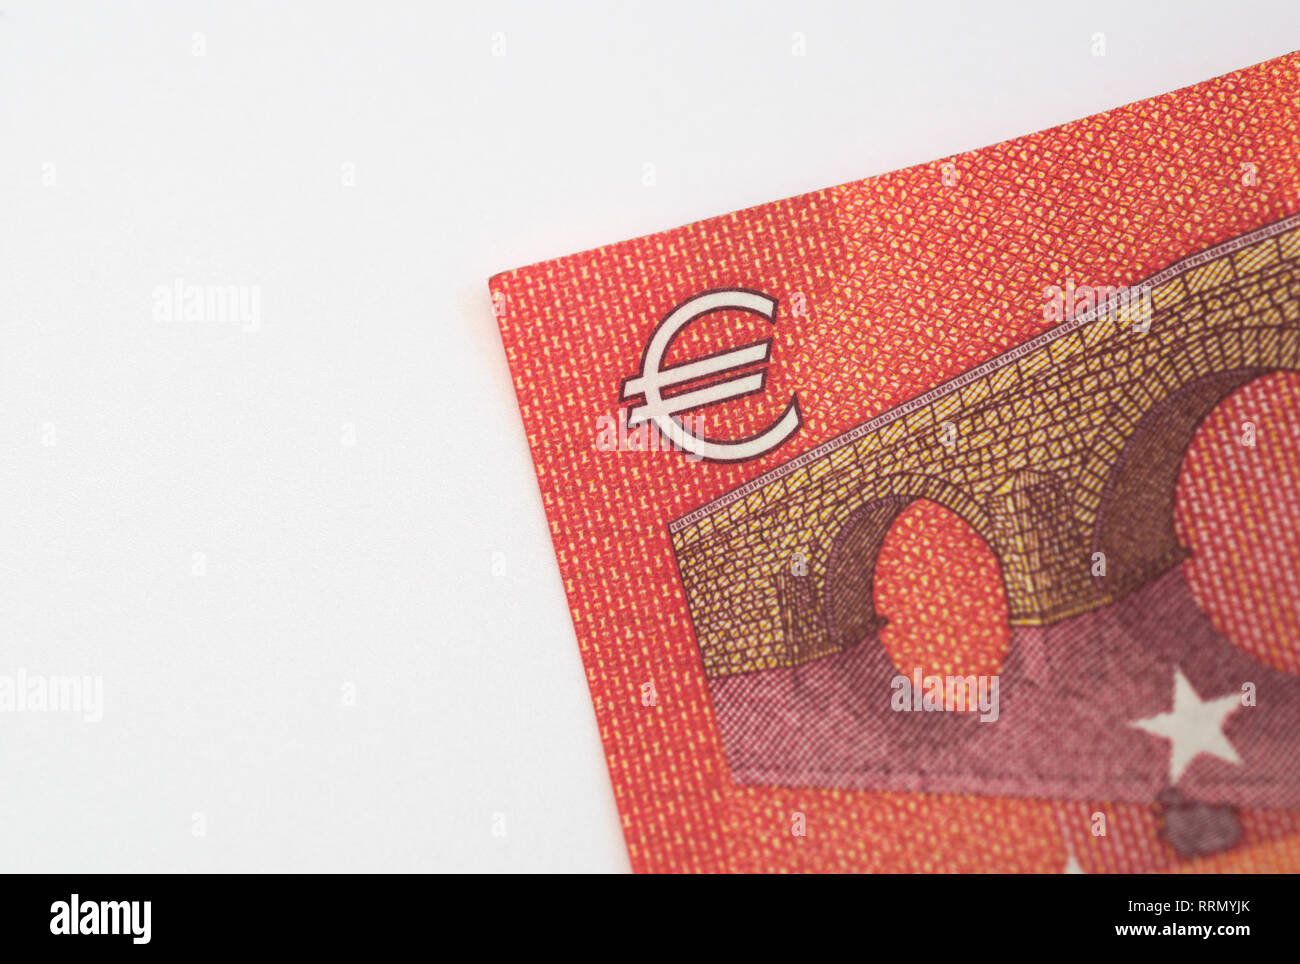 Euro currency symbol on 10 euro banknote - Stock Image